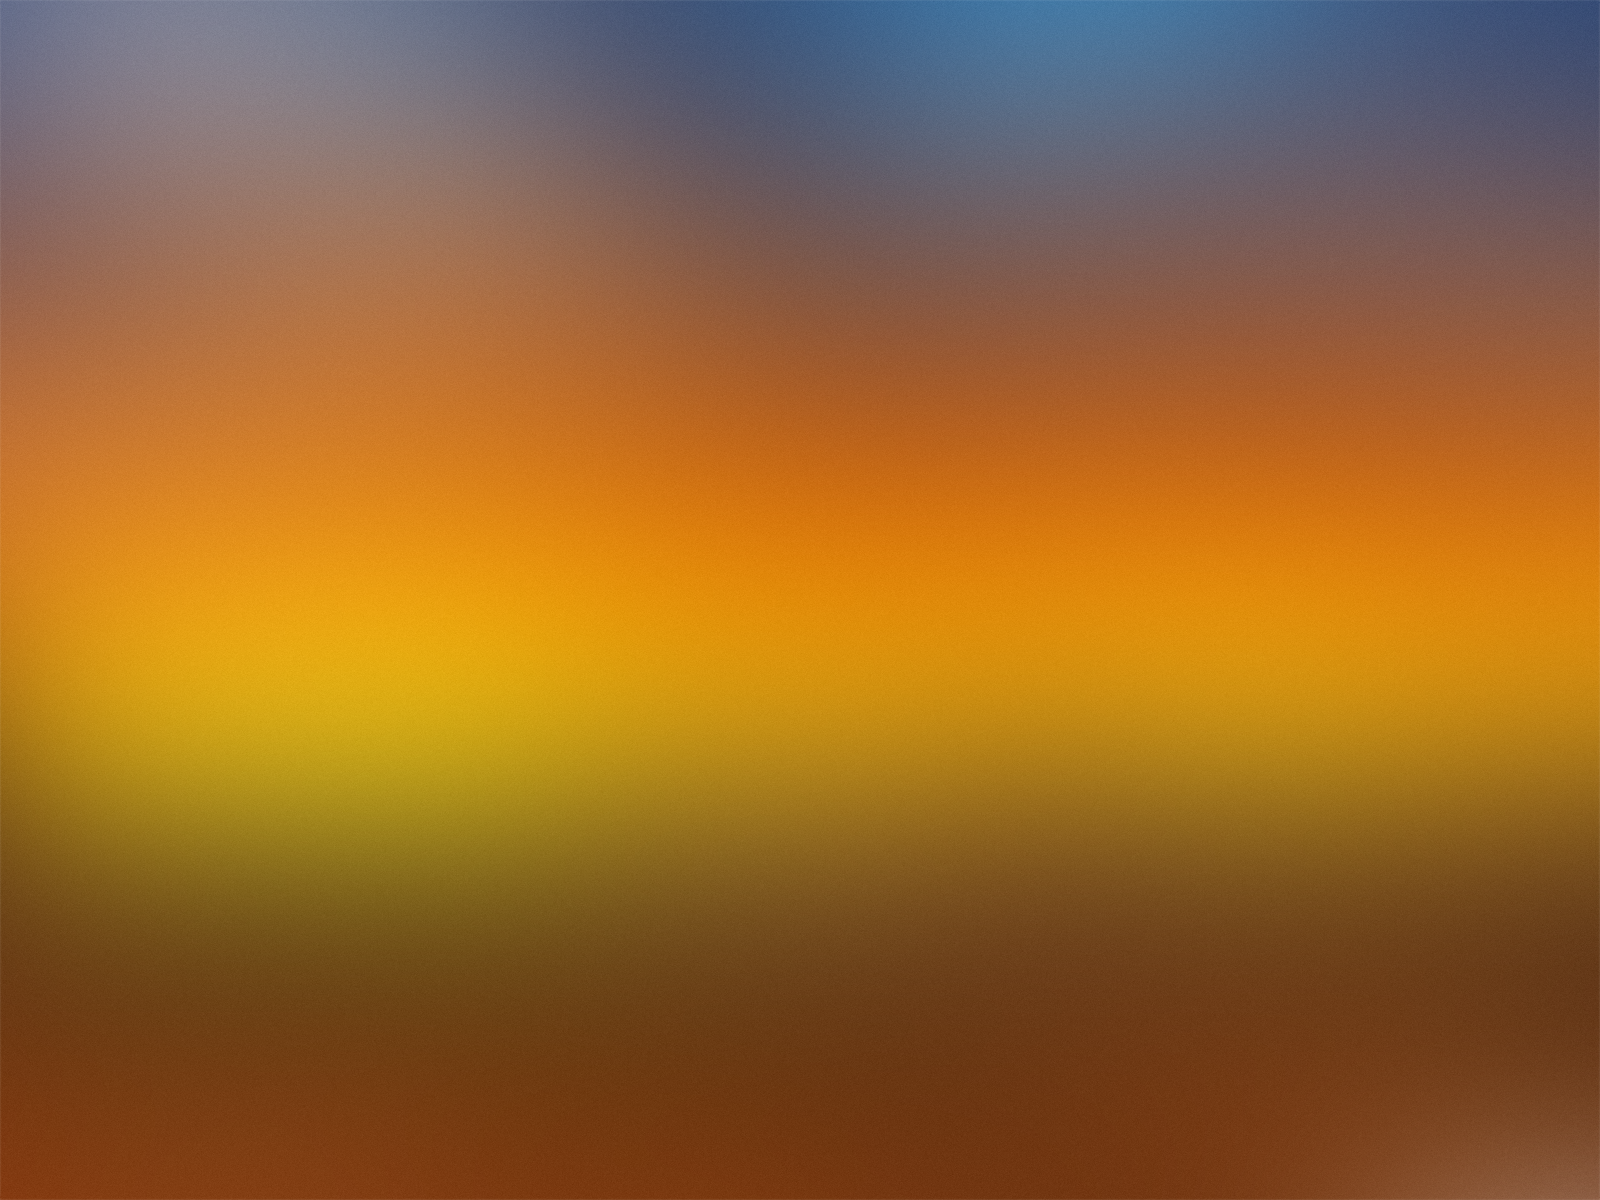 Blurred-Background-83